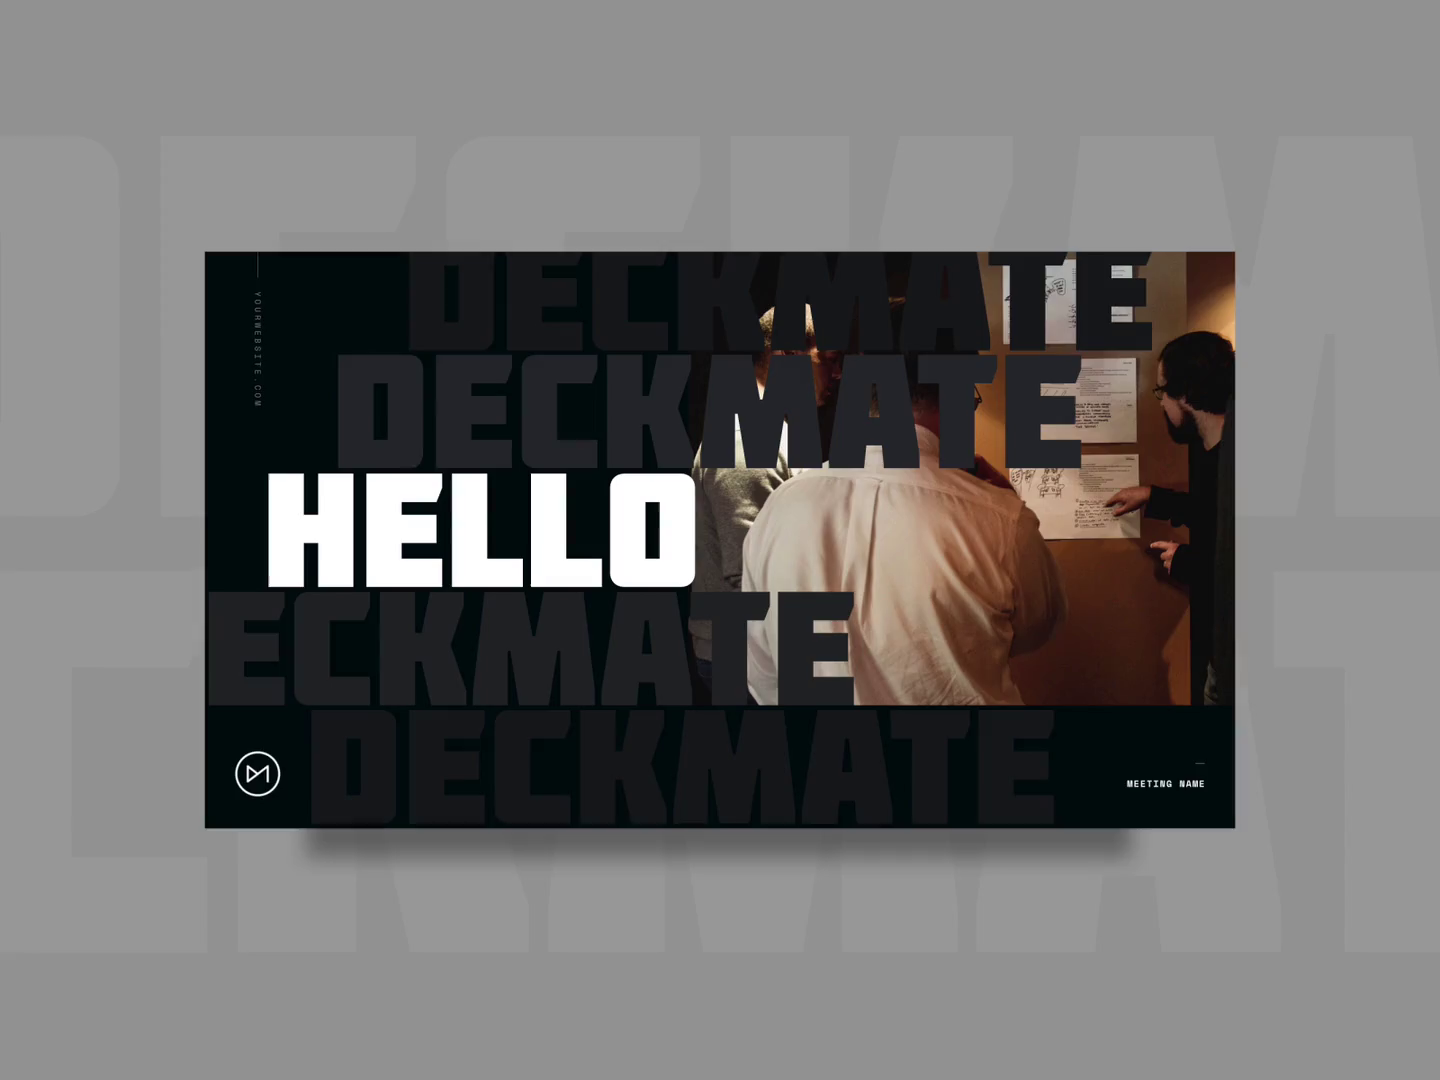 Deckmate promo video